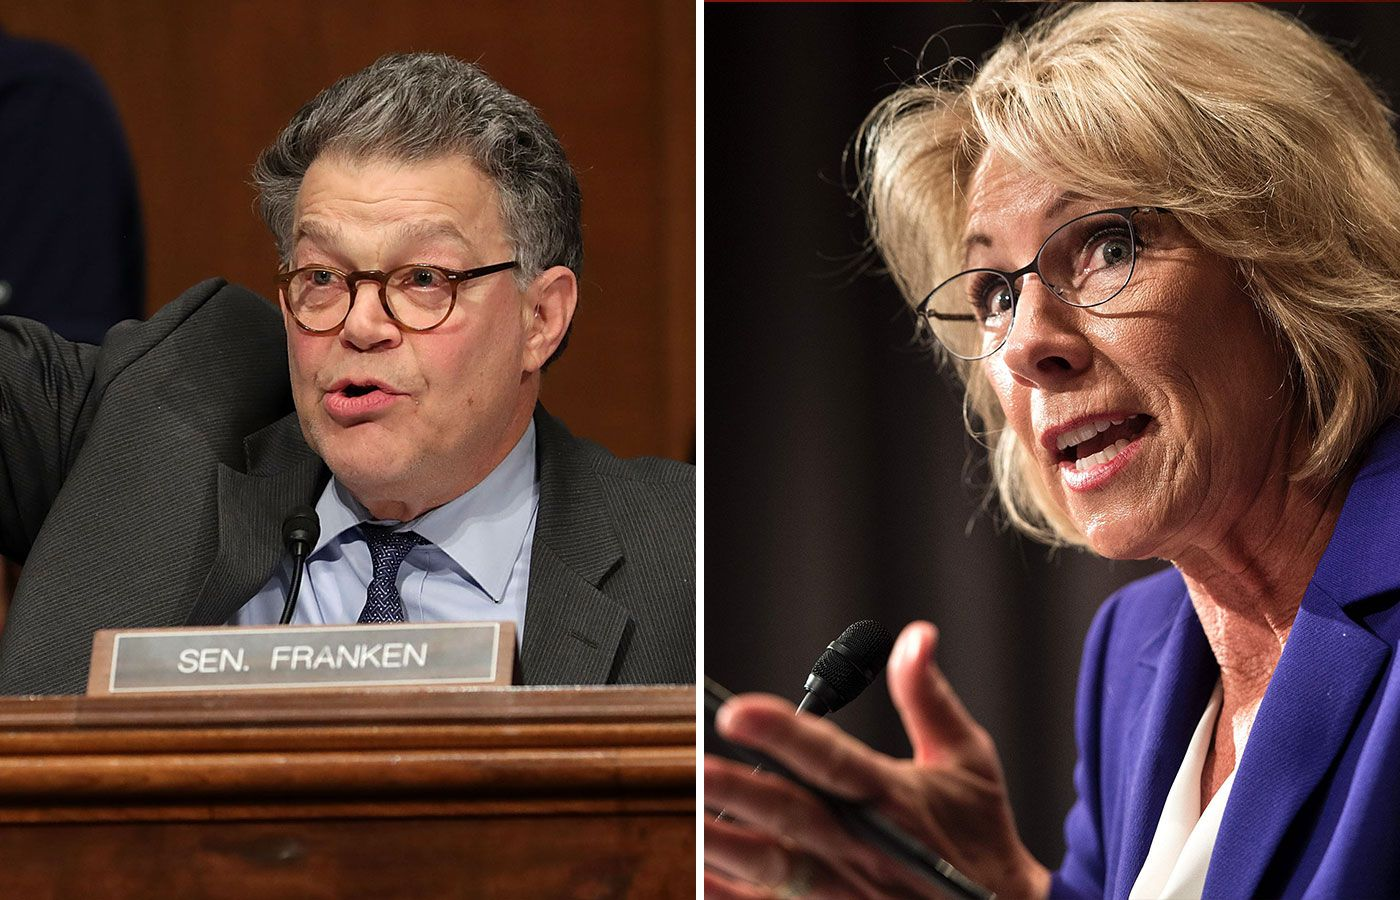 The Betsy Devos Hearing Was Insult To >> Al Franken Skewers Betsy Devos On Basic Education Policy